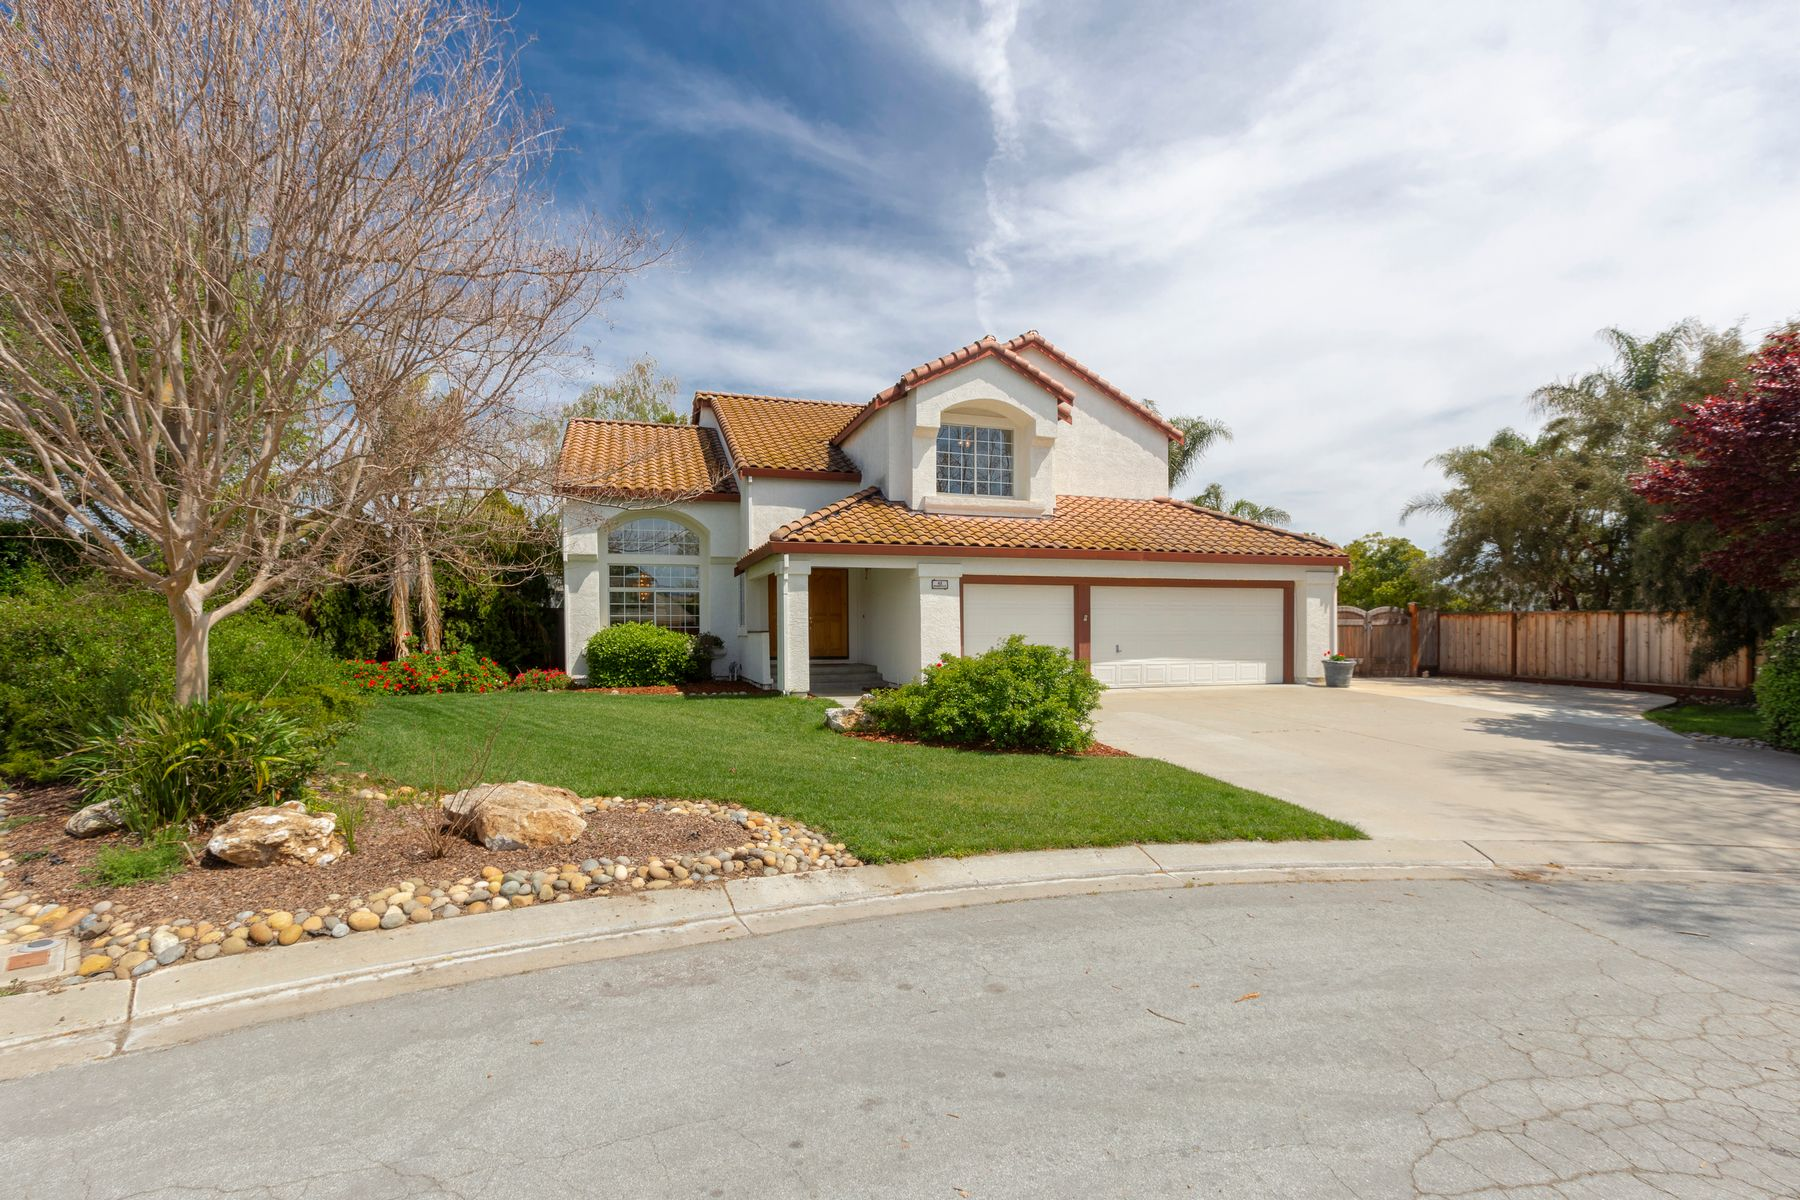 Single Family Homes for Active at Golf Community in Sunny Hollister 42 Maries Ct. Hollister, California 95023 United States